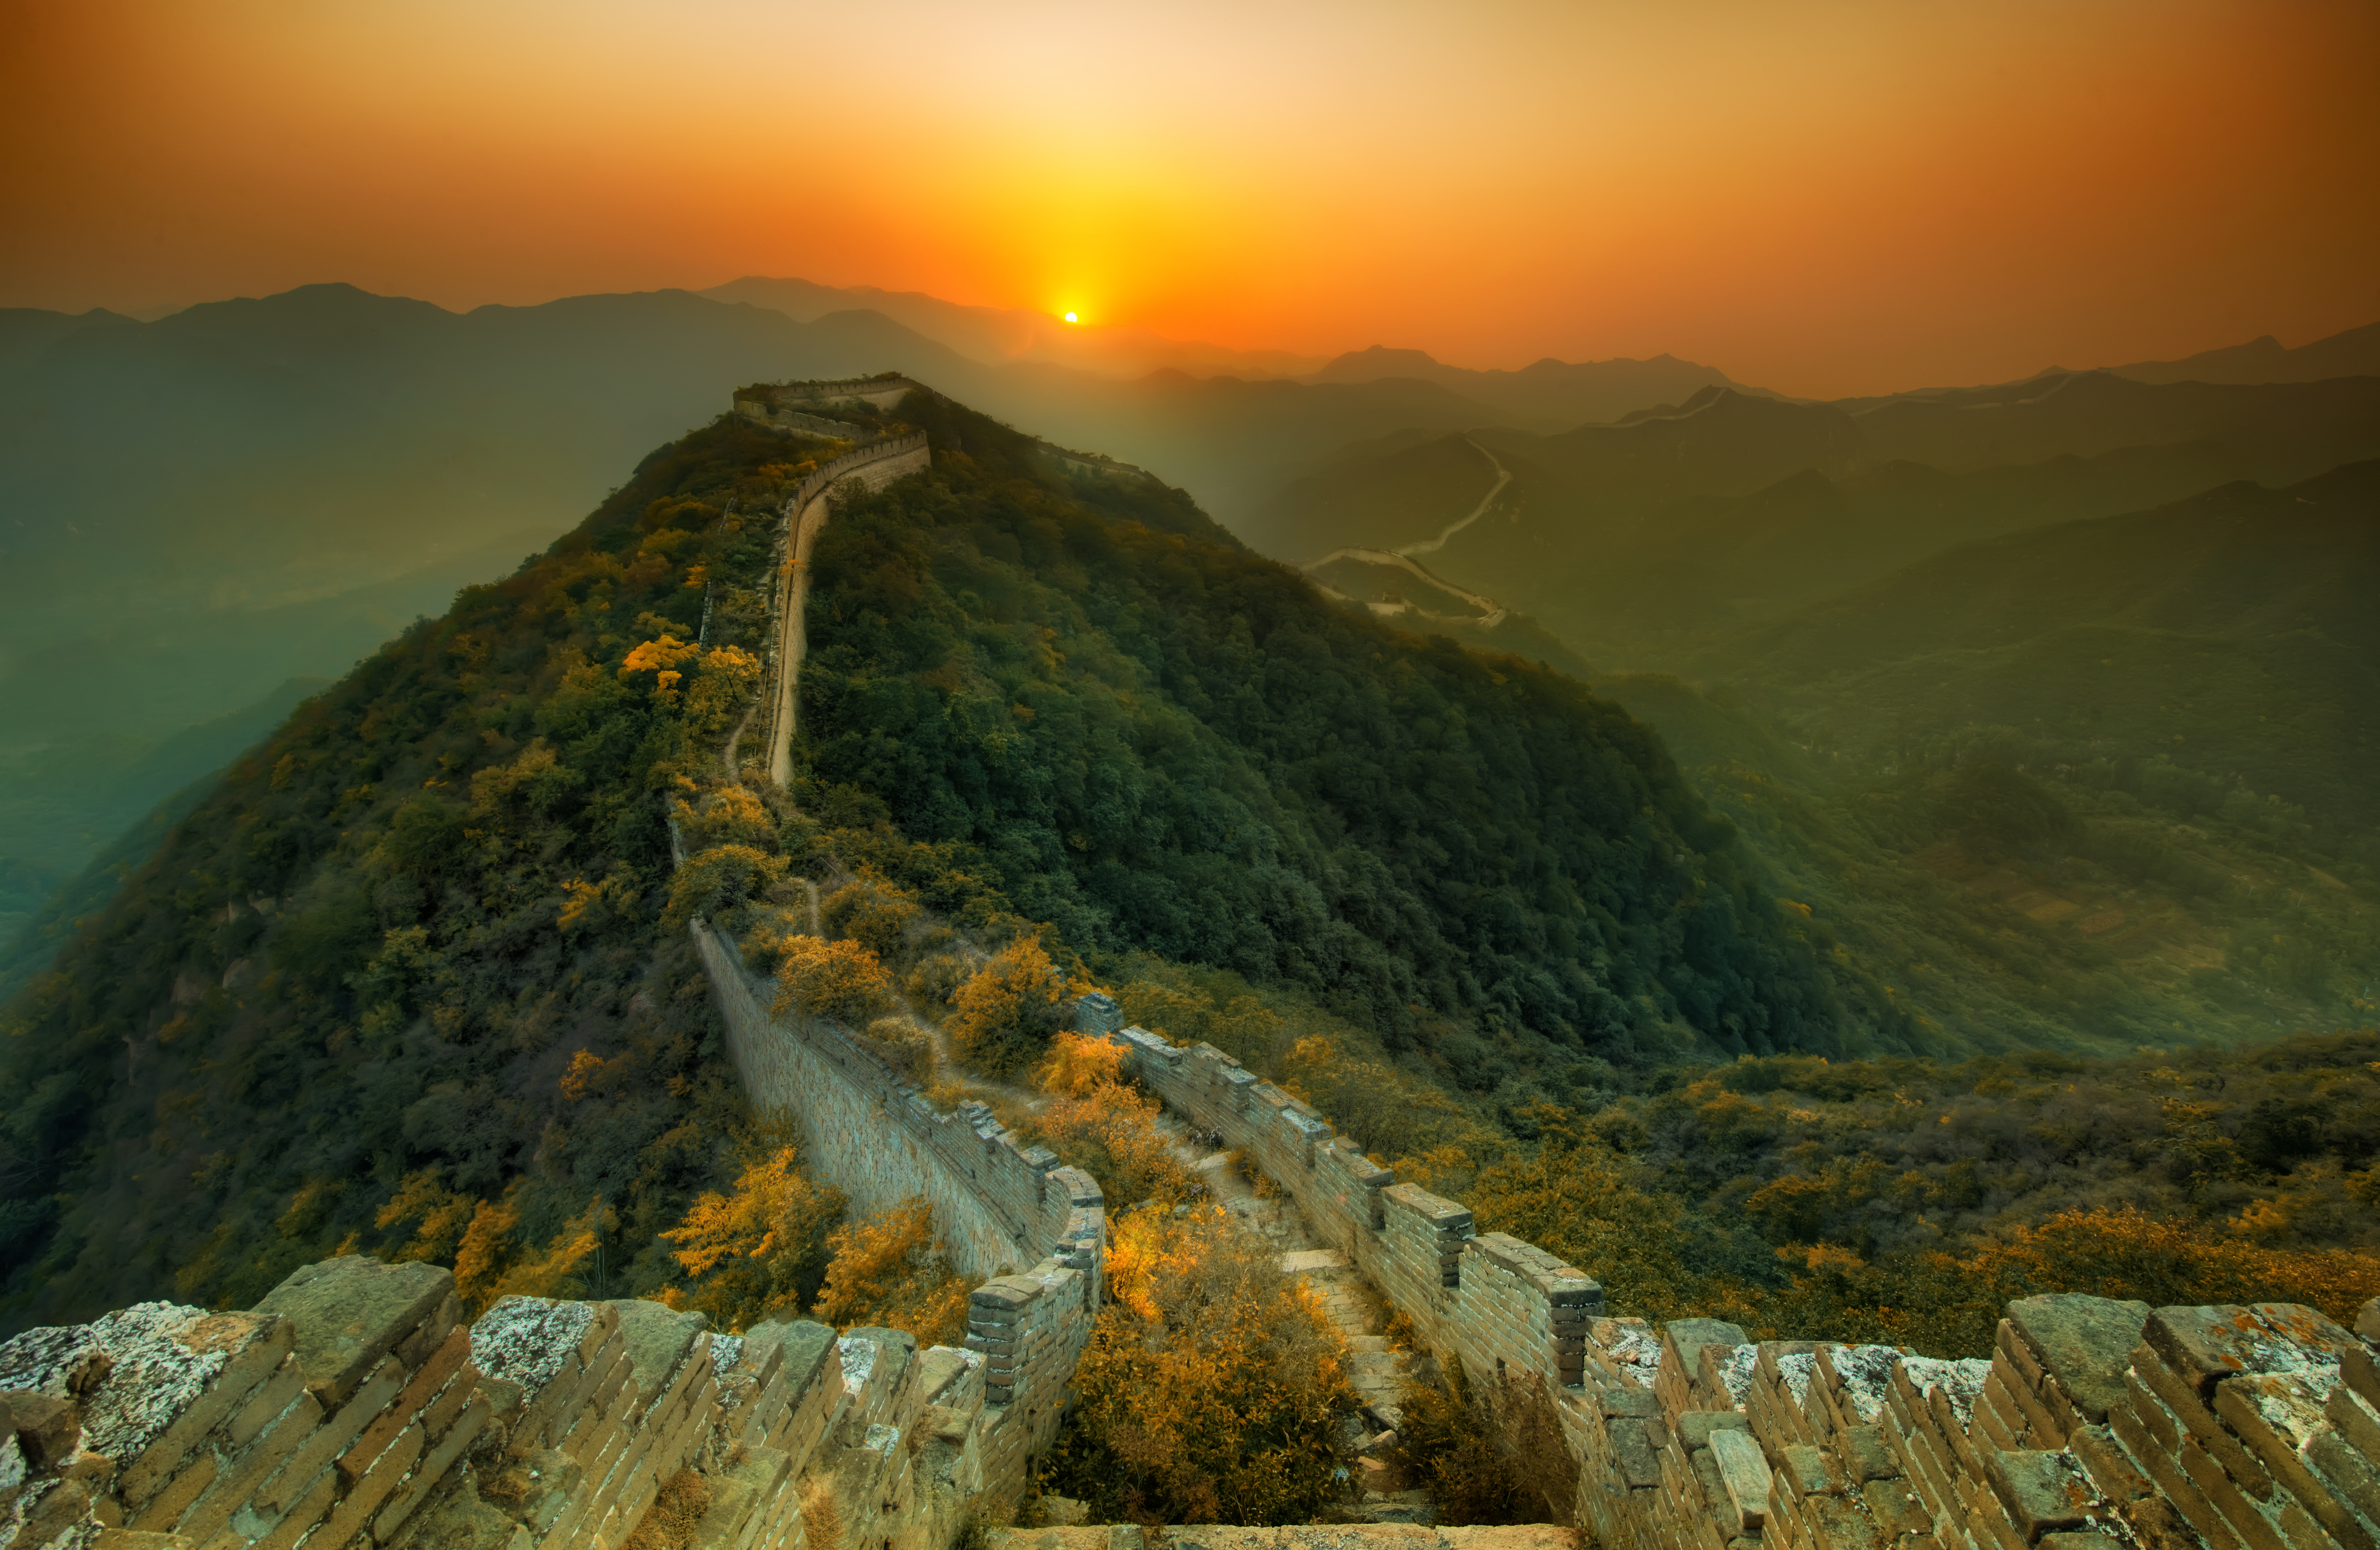 56 Great Wall Of China Hd Wallpapers Background Images